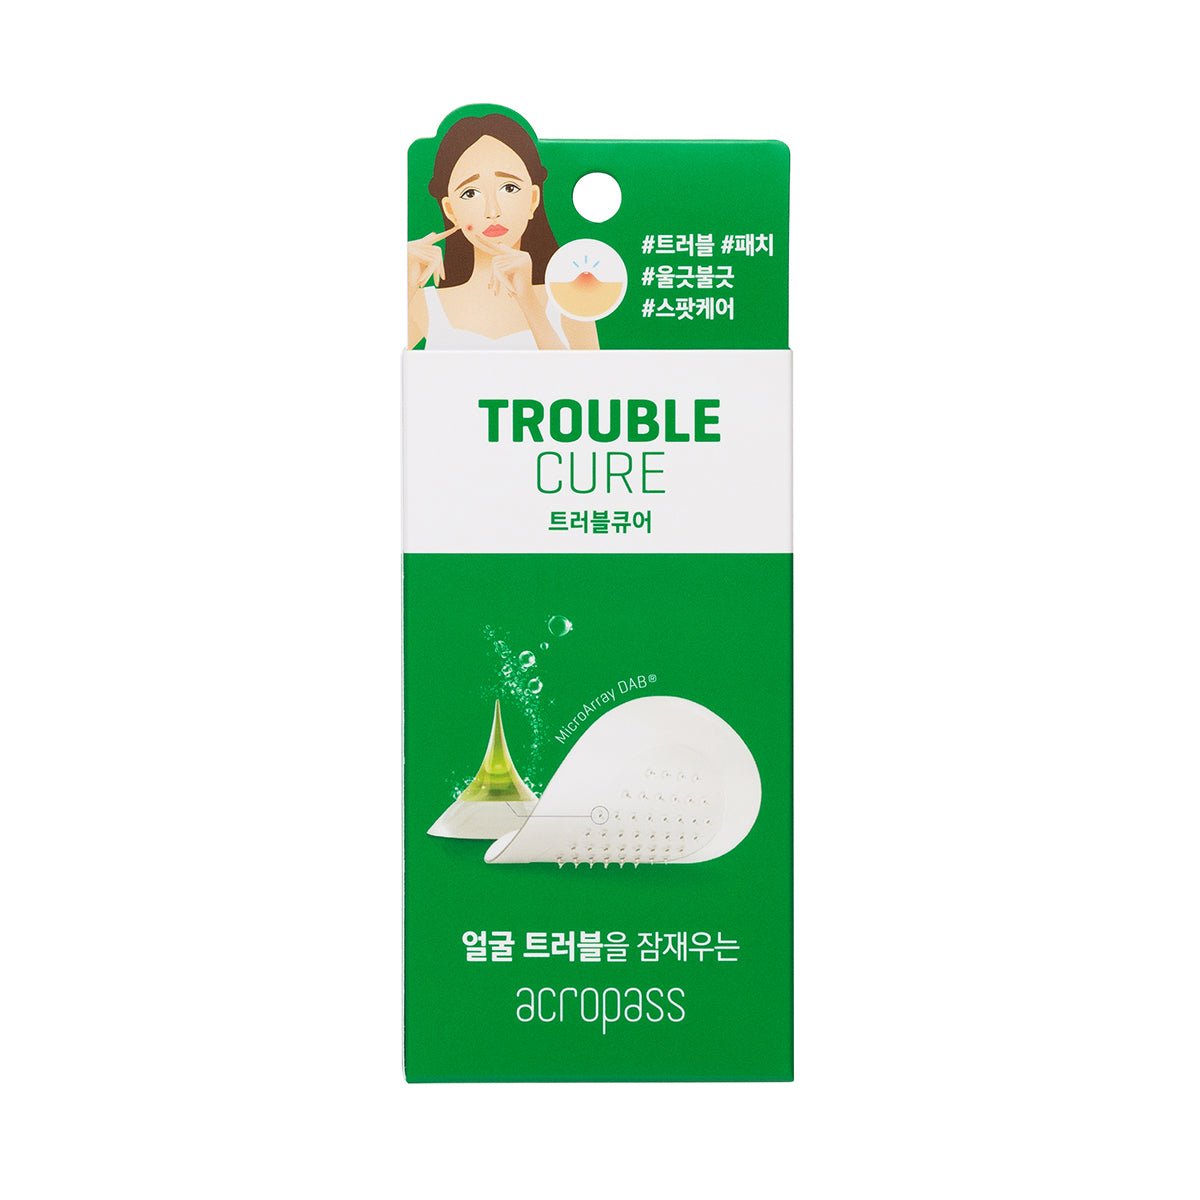 [Acropass] Trouble Cure (Skin Cleanser 6 ea + Trouble Cure 6 patches)